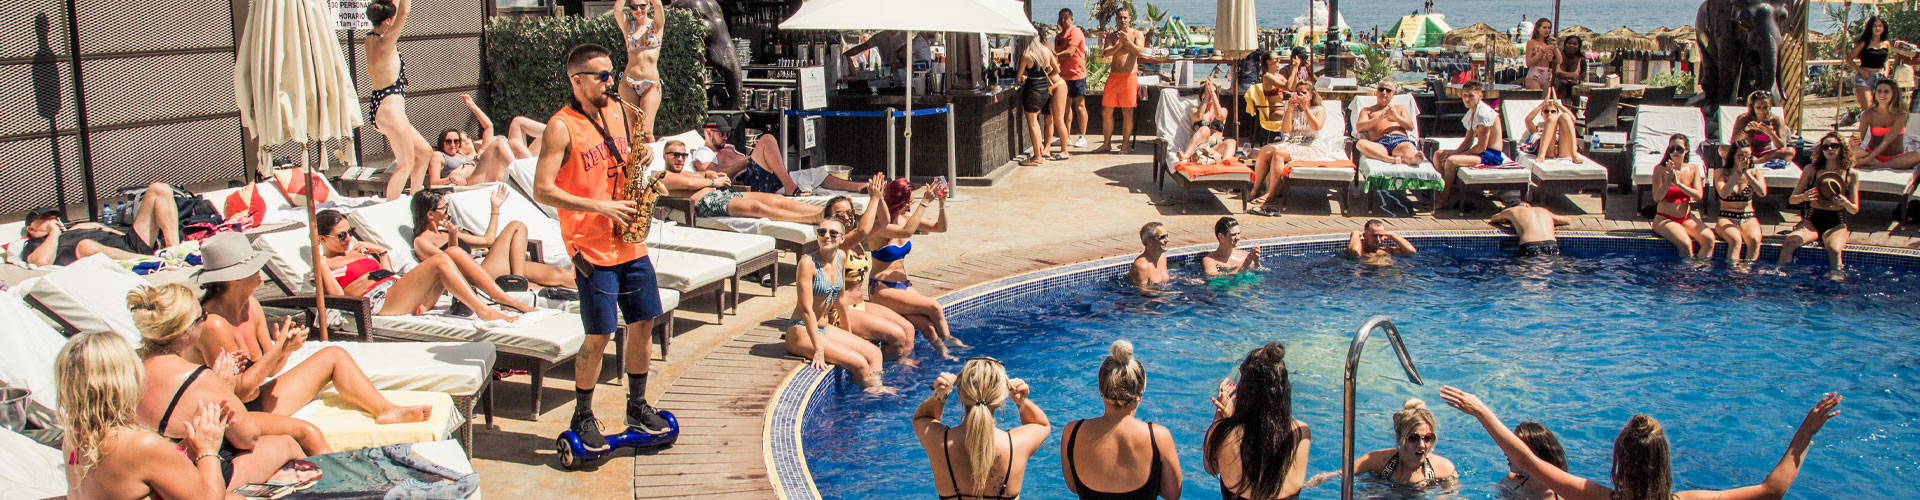 Party on the beach in Puerto Banus at La Sala by the Sea